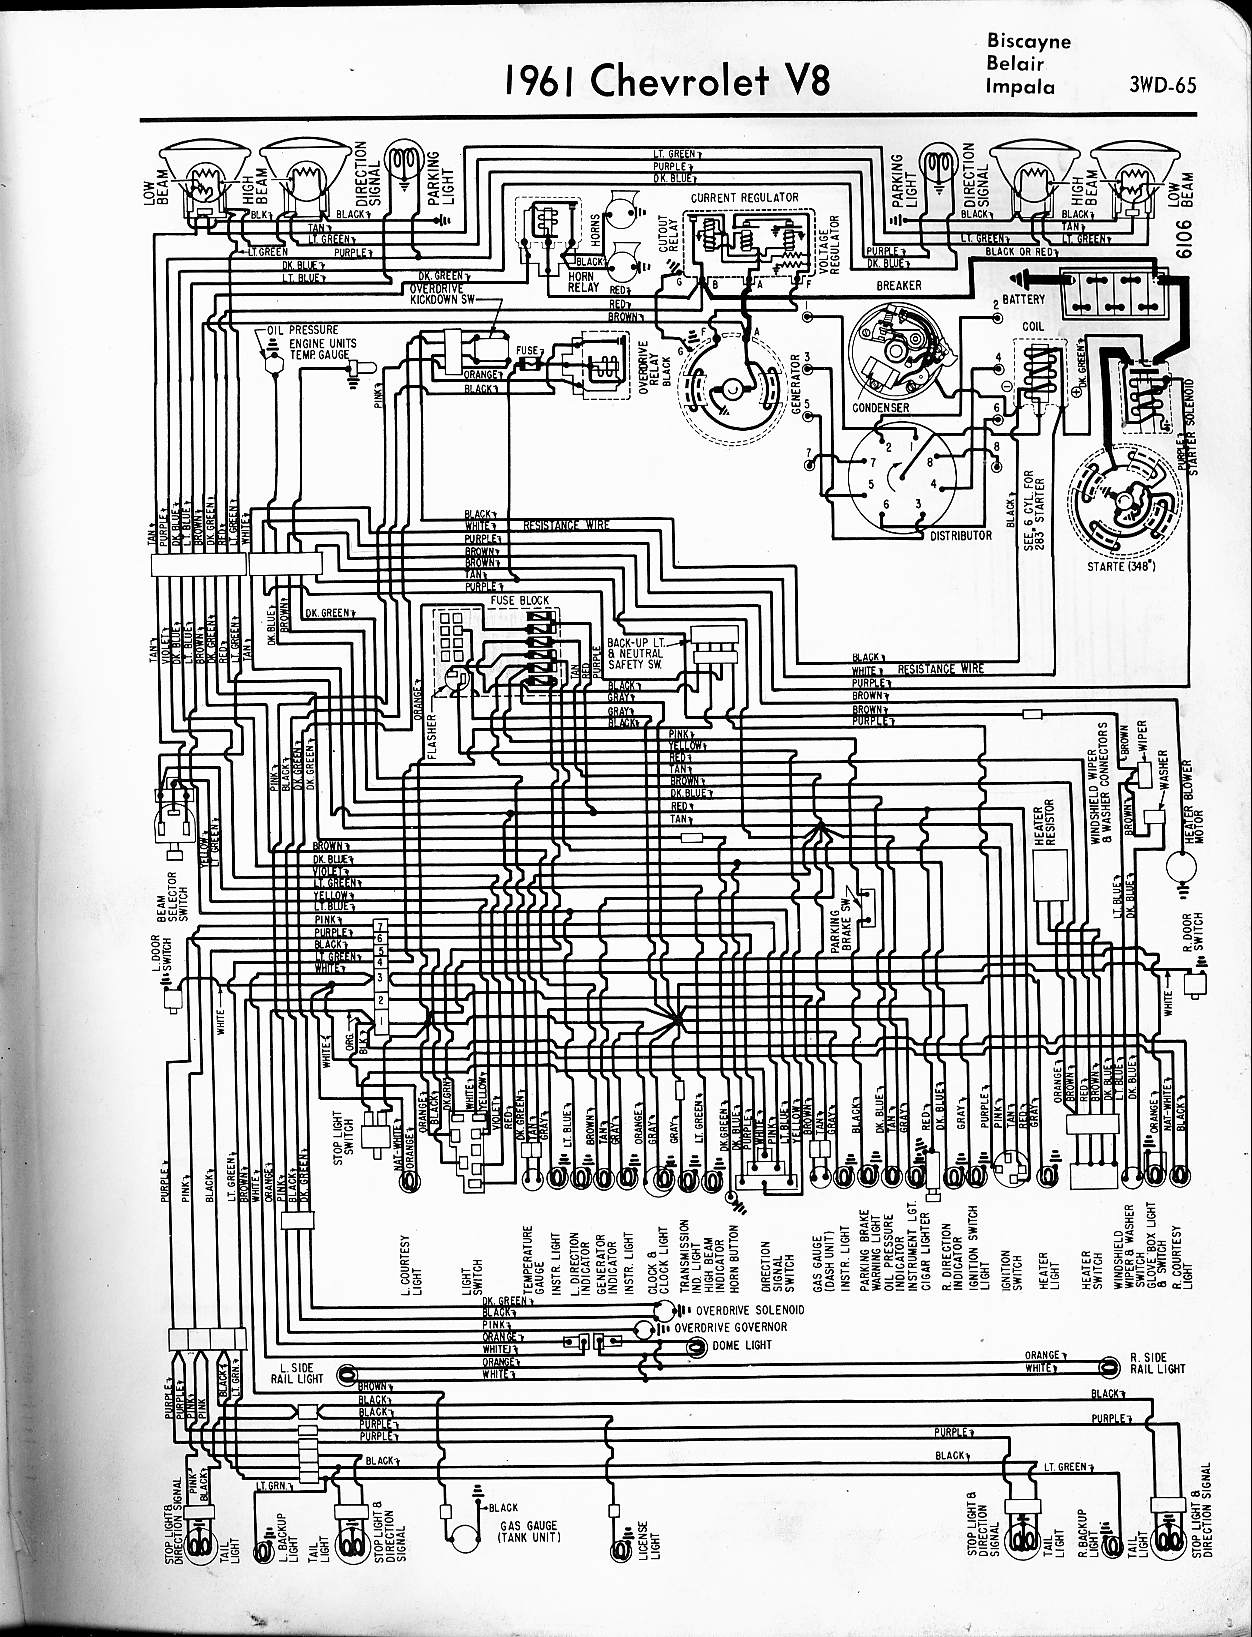 1963 C10 Wiring Diagram Archive Of Automotive Humbucker Obl Images Gallery